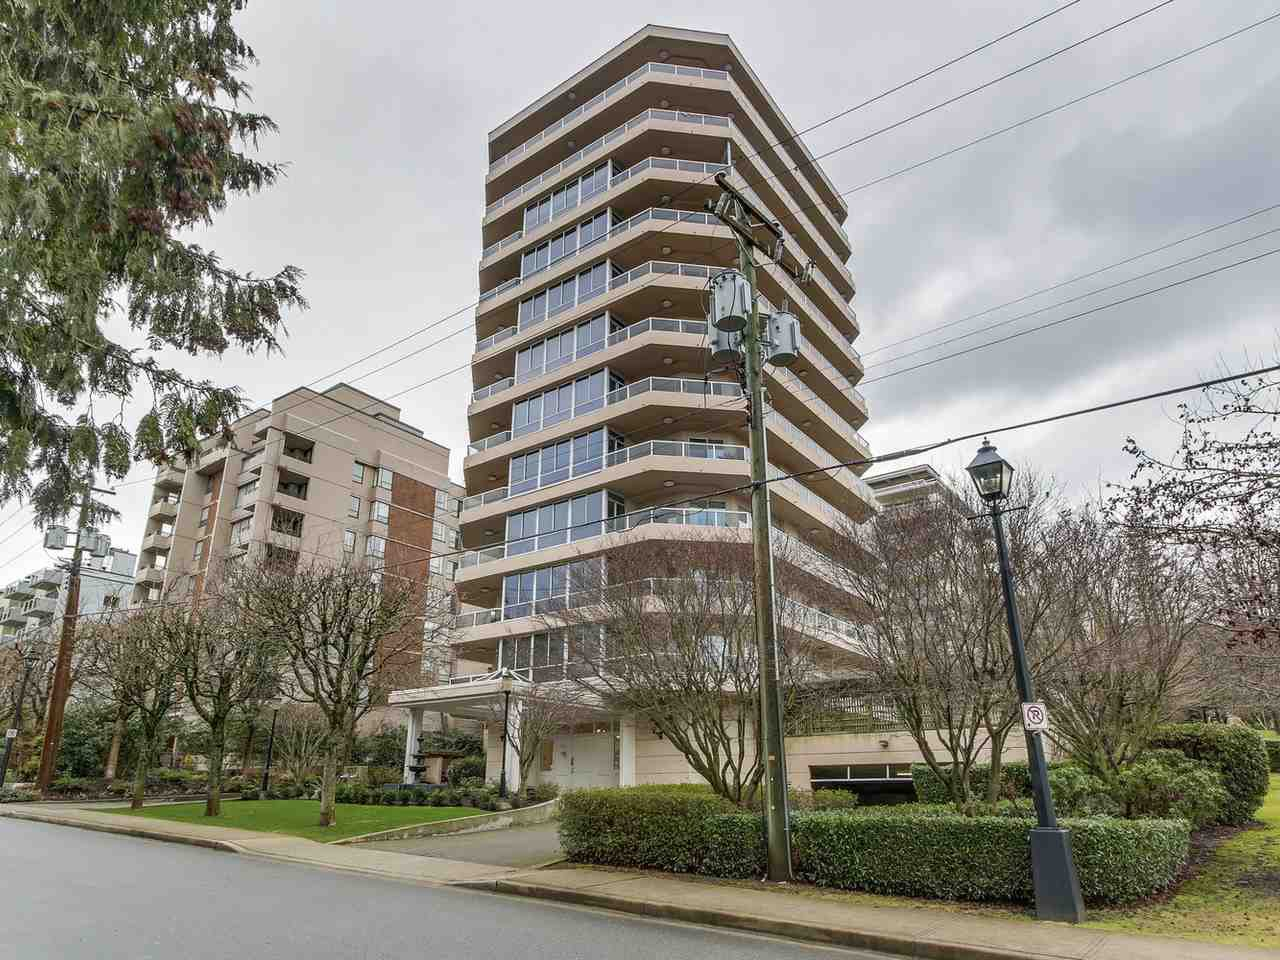 "Main Photo: 2 1717 DUCHESS Avenue in West Vancouver: Ambleside Condo for sale in ""The Regent"" : MLS®# R2138908"